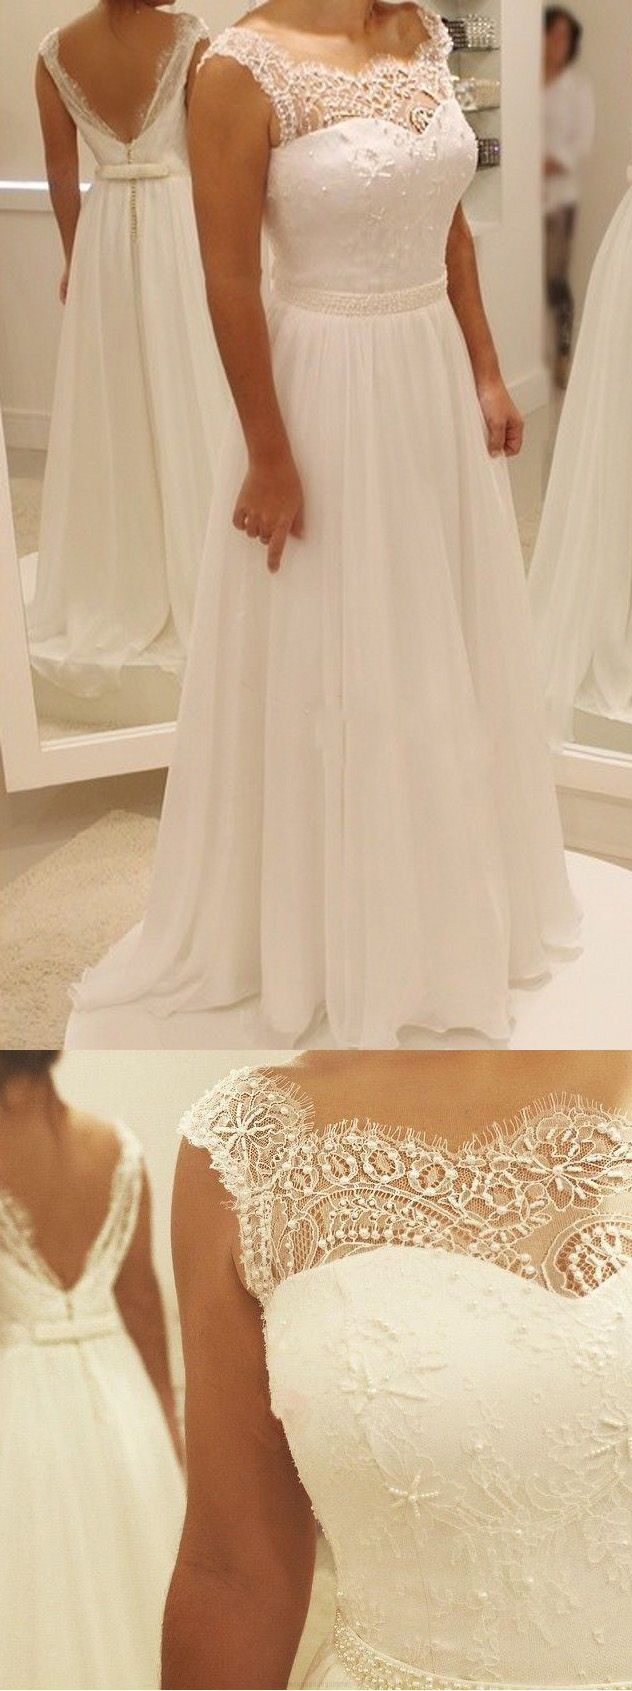 Lace Wedding dresses, Wedding Dresses Lace, Sexy Lace Wedding Dresses, White Wedding Dresses, Sleeveless Wedding Dresses, White Lace Wedding dresses, White Lace dresses, Long White dresses, Sexy White Dresses, Sexy Wedding Dresses, Sexy Lace Dresses, Long Wedding Dresses, Bowknot Wedding Dresses, Floor-length Wedding Dresses